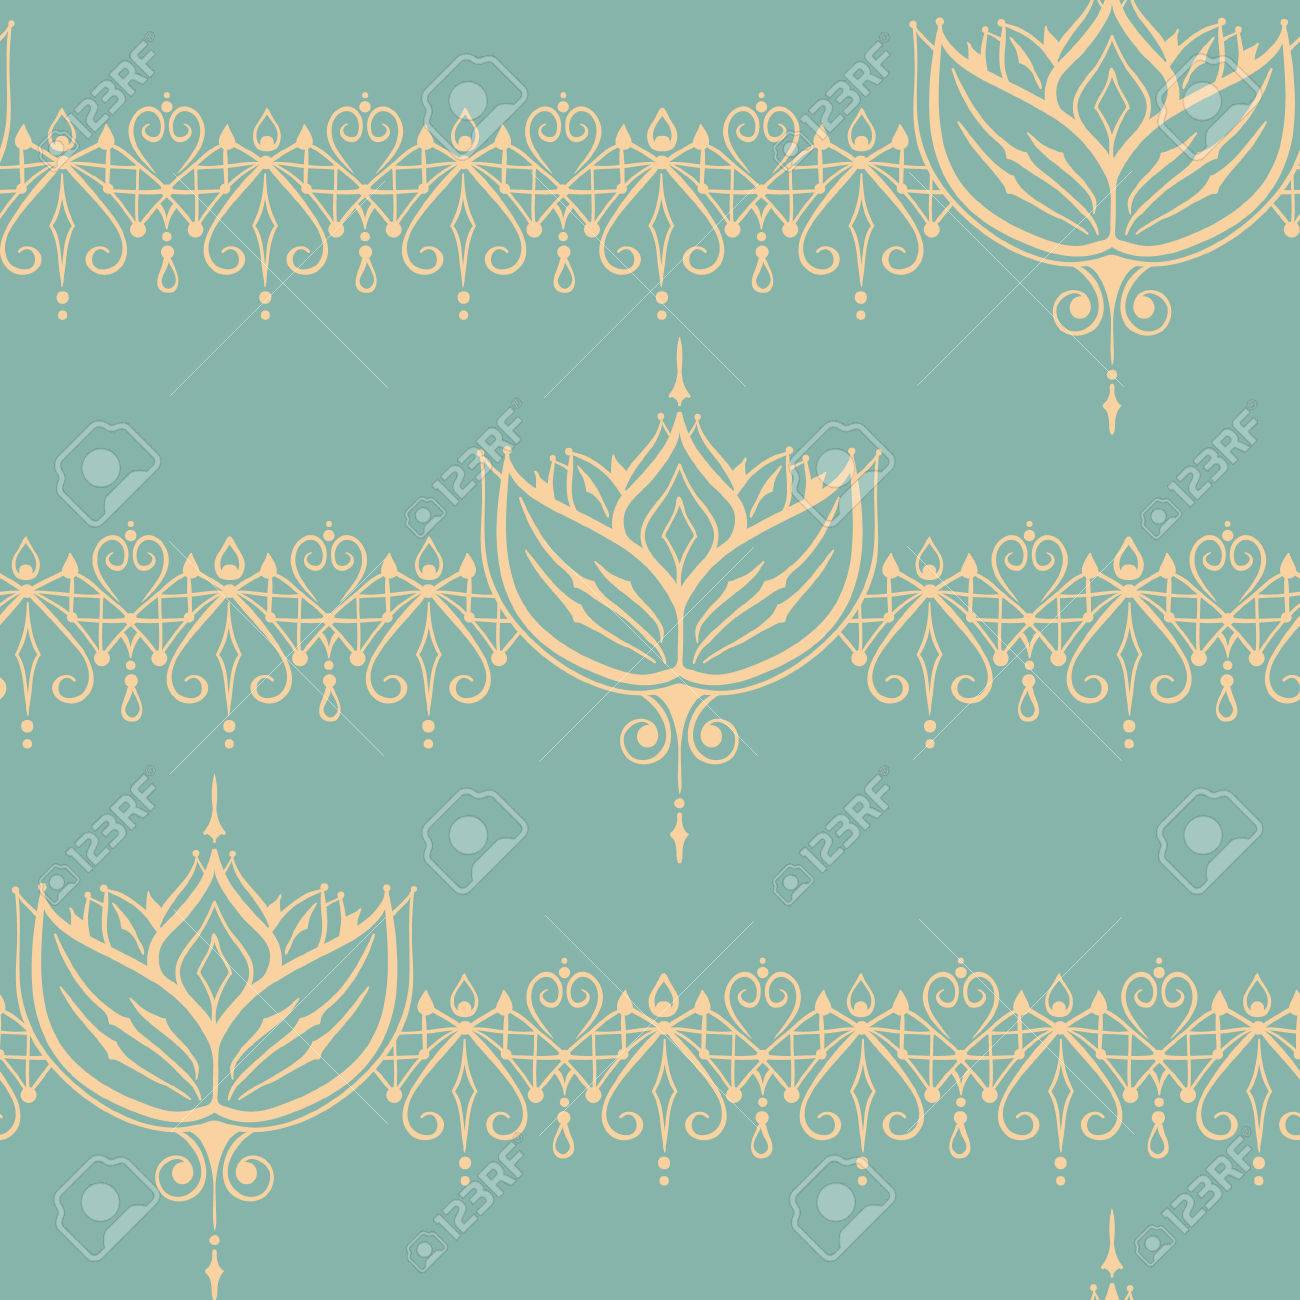 Sketch Of Endless Stripes And Lotus Flower In Henna Tattoo Style